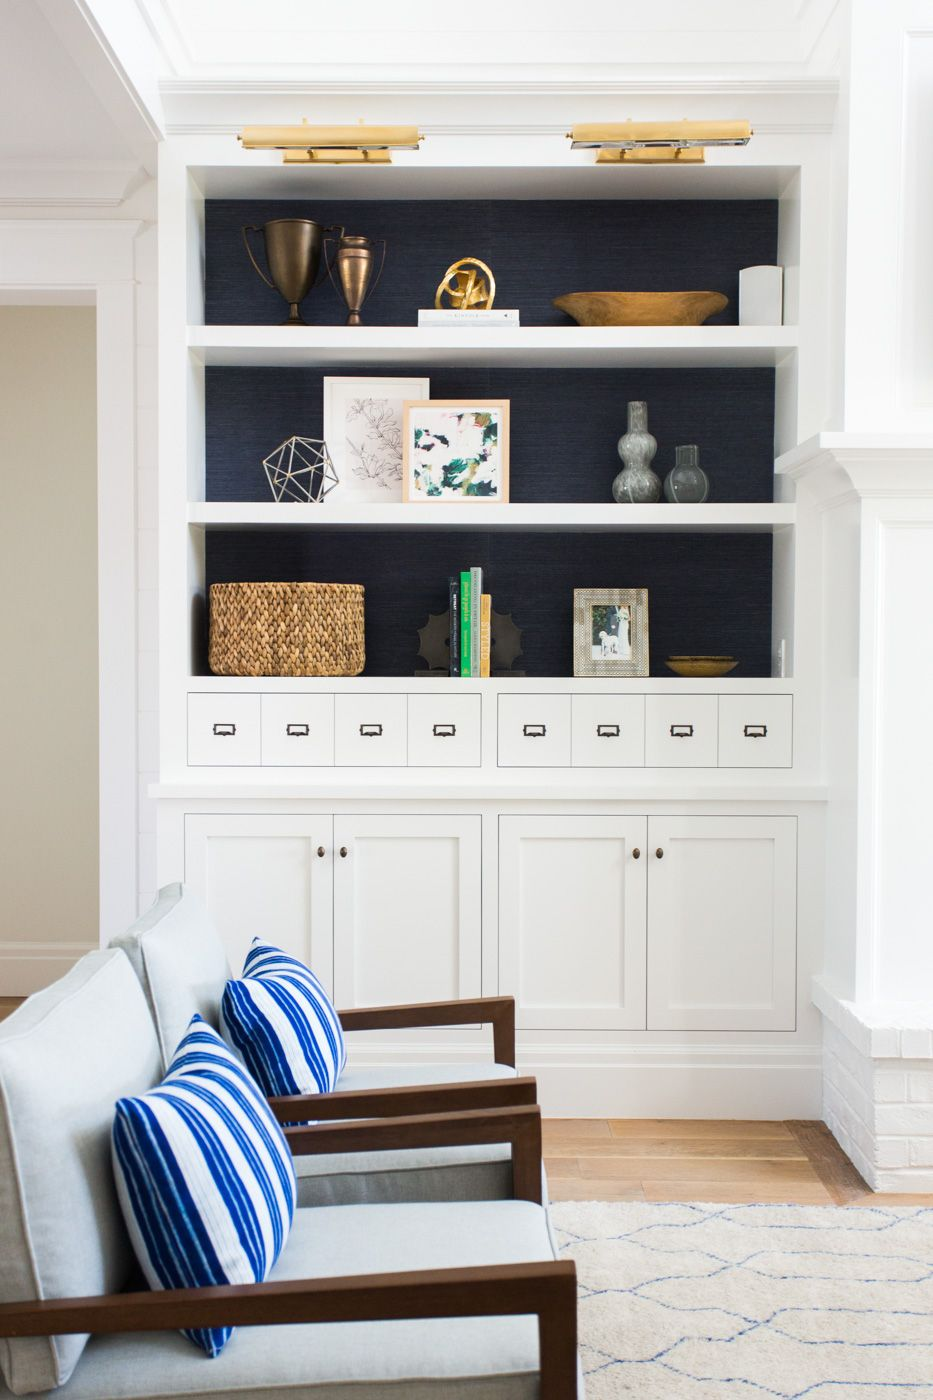 How to Style a Bookshelf | Pinterest | Studio mcgee, Studio and ...